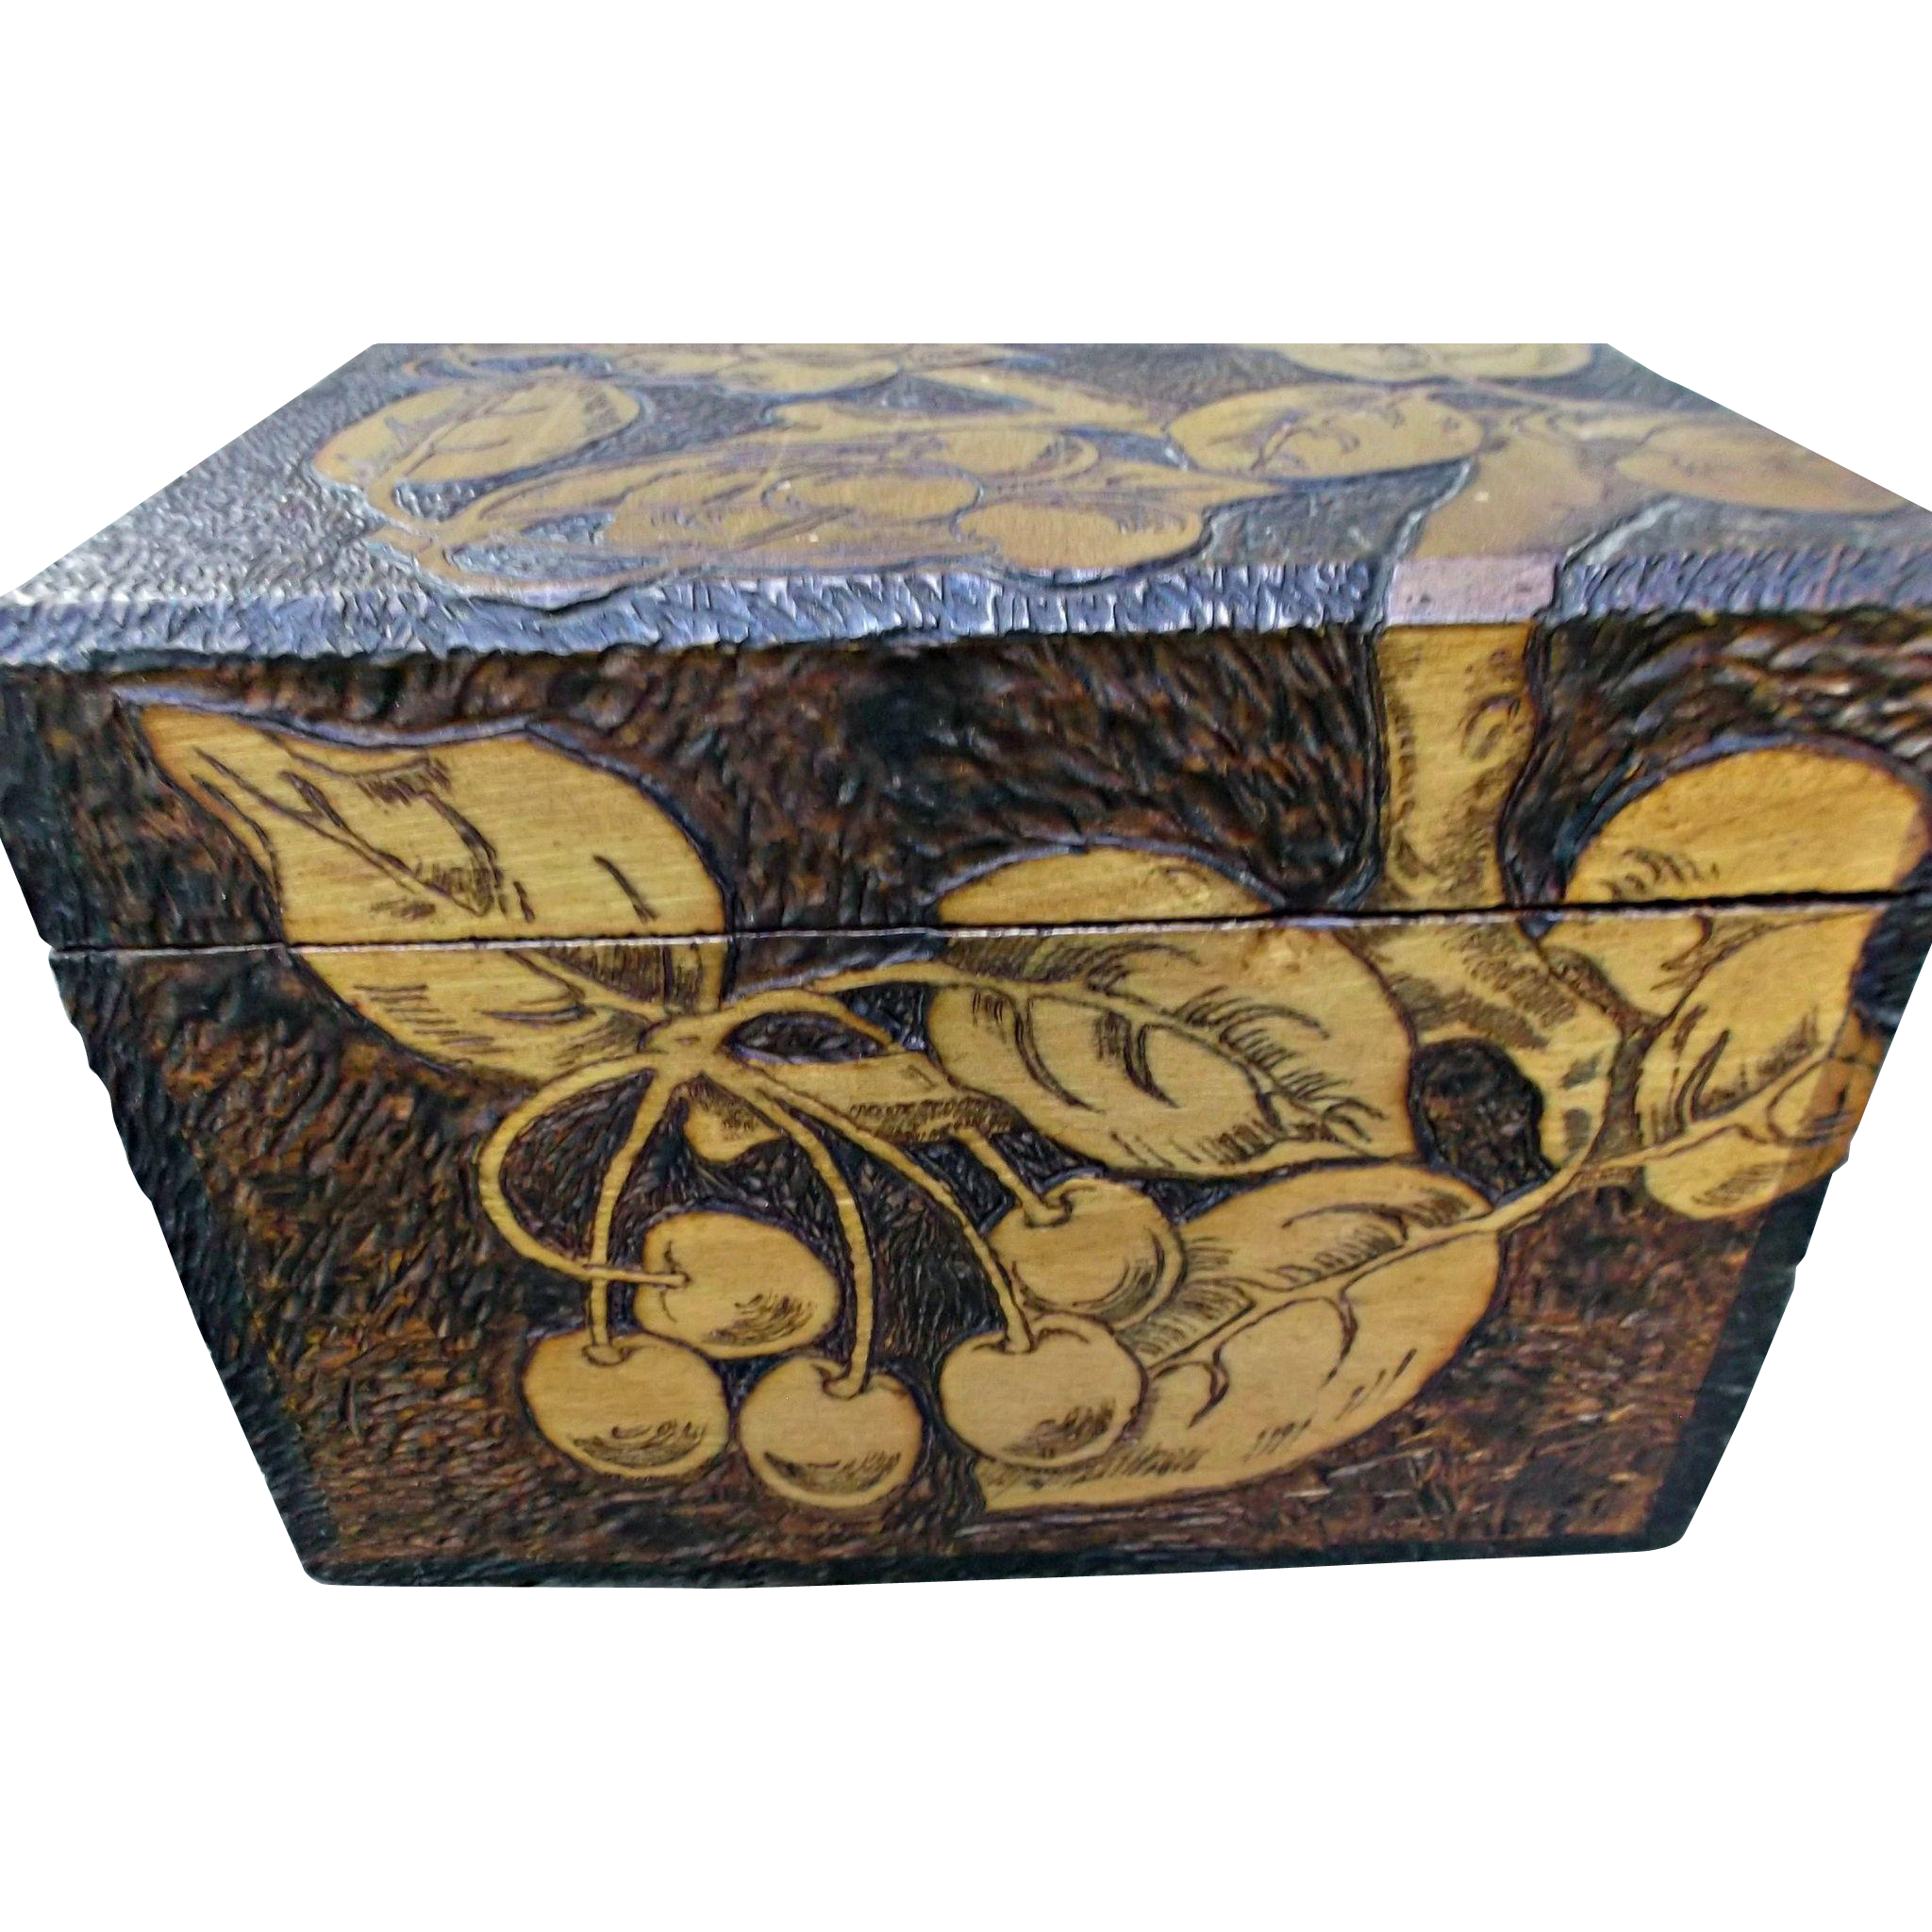 Flemish Art Pyrography Vintage Wood Box Cherries Documents Collars Hat